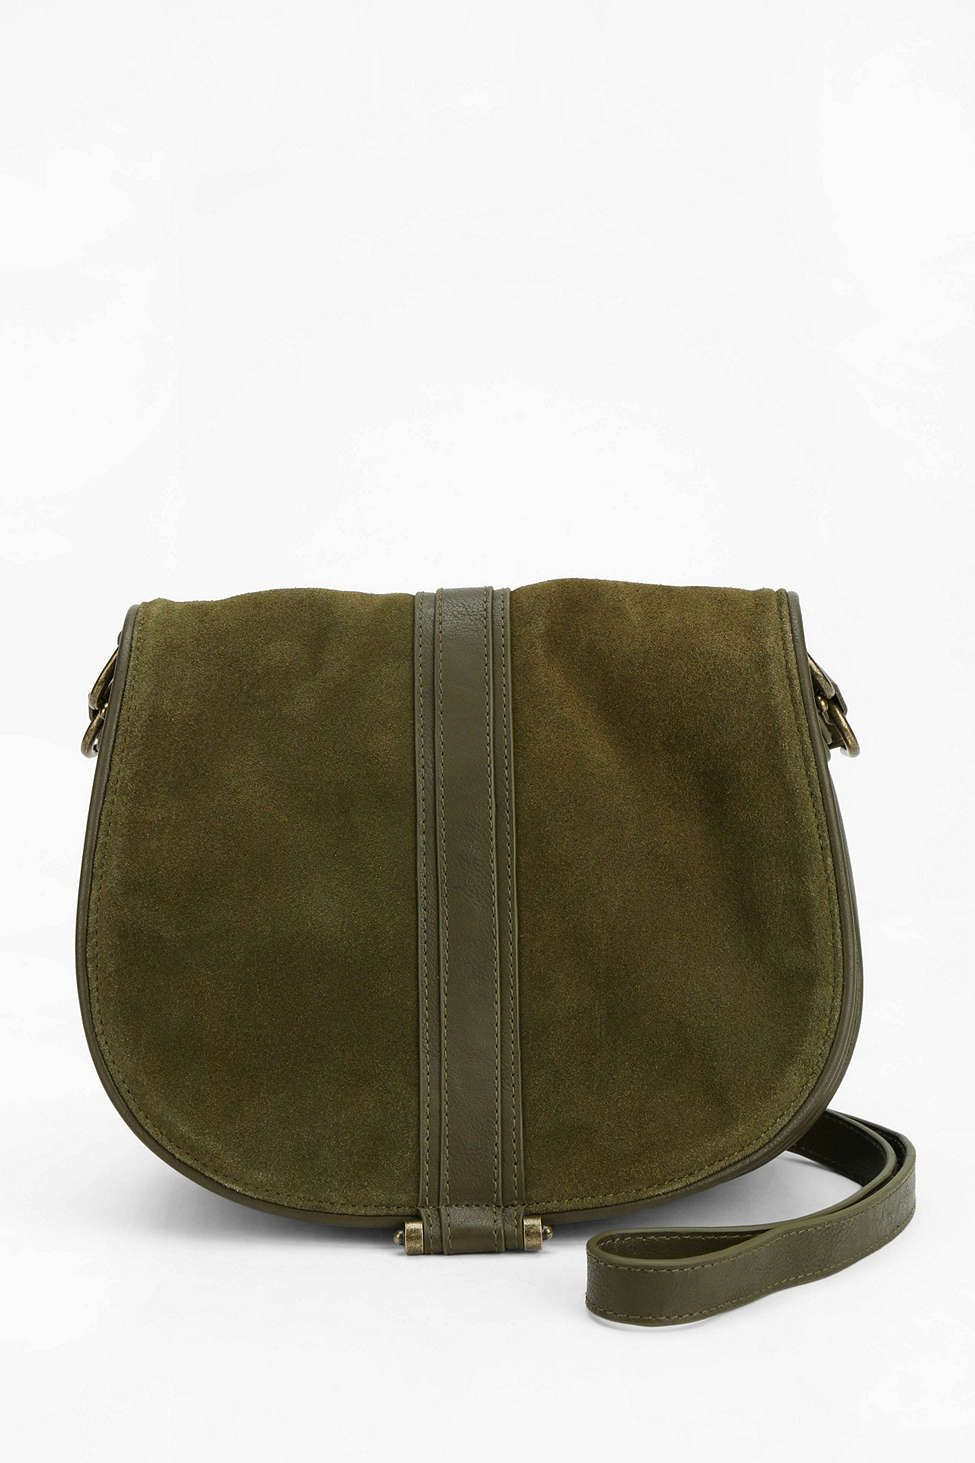 733fa0d0dd10 BDG Cameron Saddle Bag Urban Outfitters